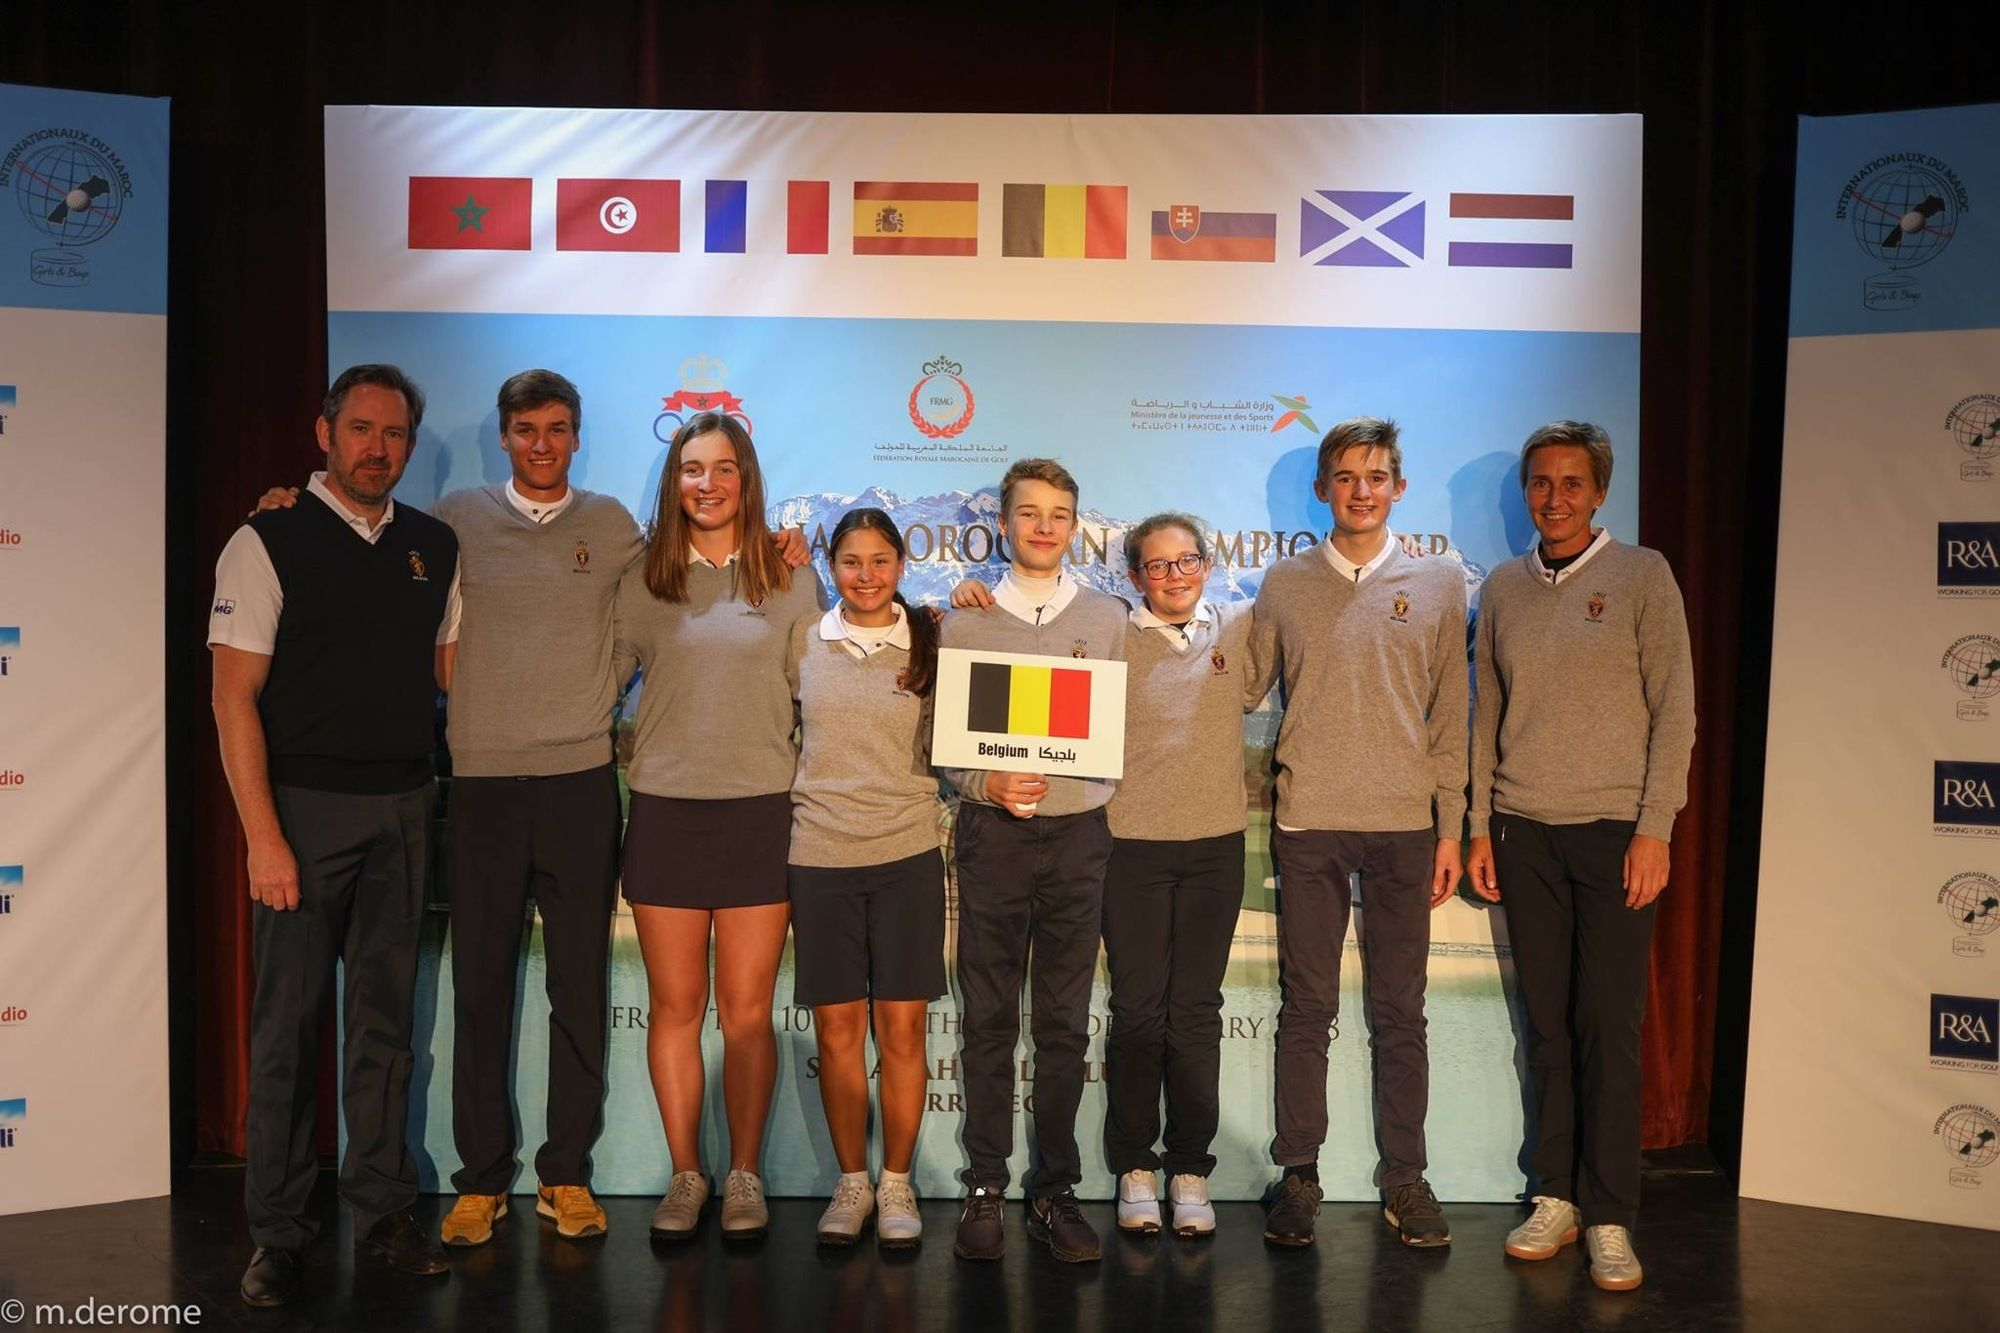 Team Belgium Junior finisht als zevende in Marokko - Blog